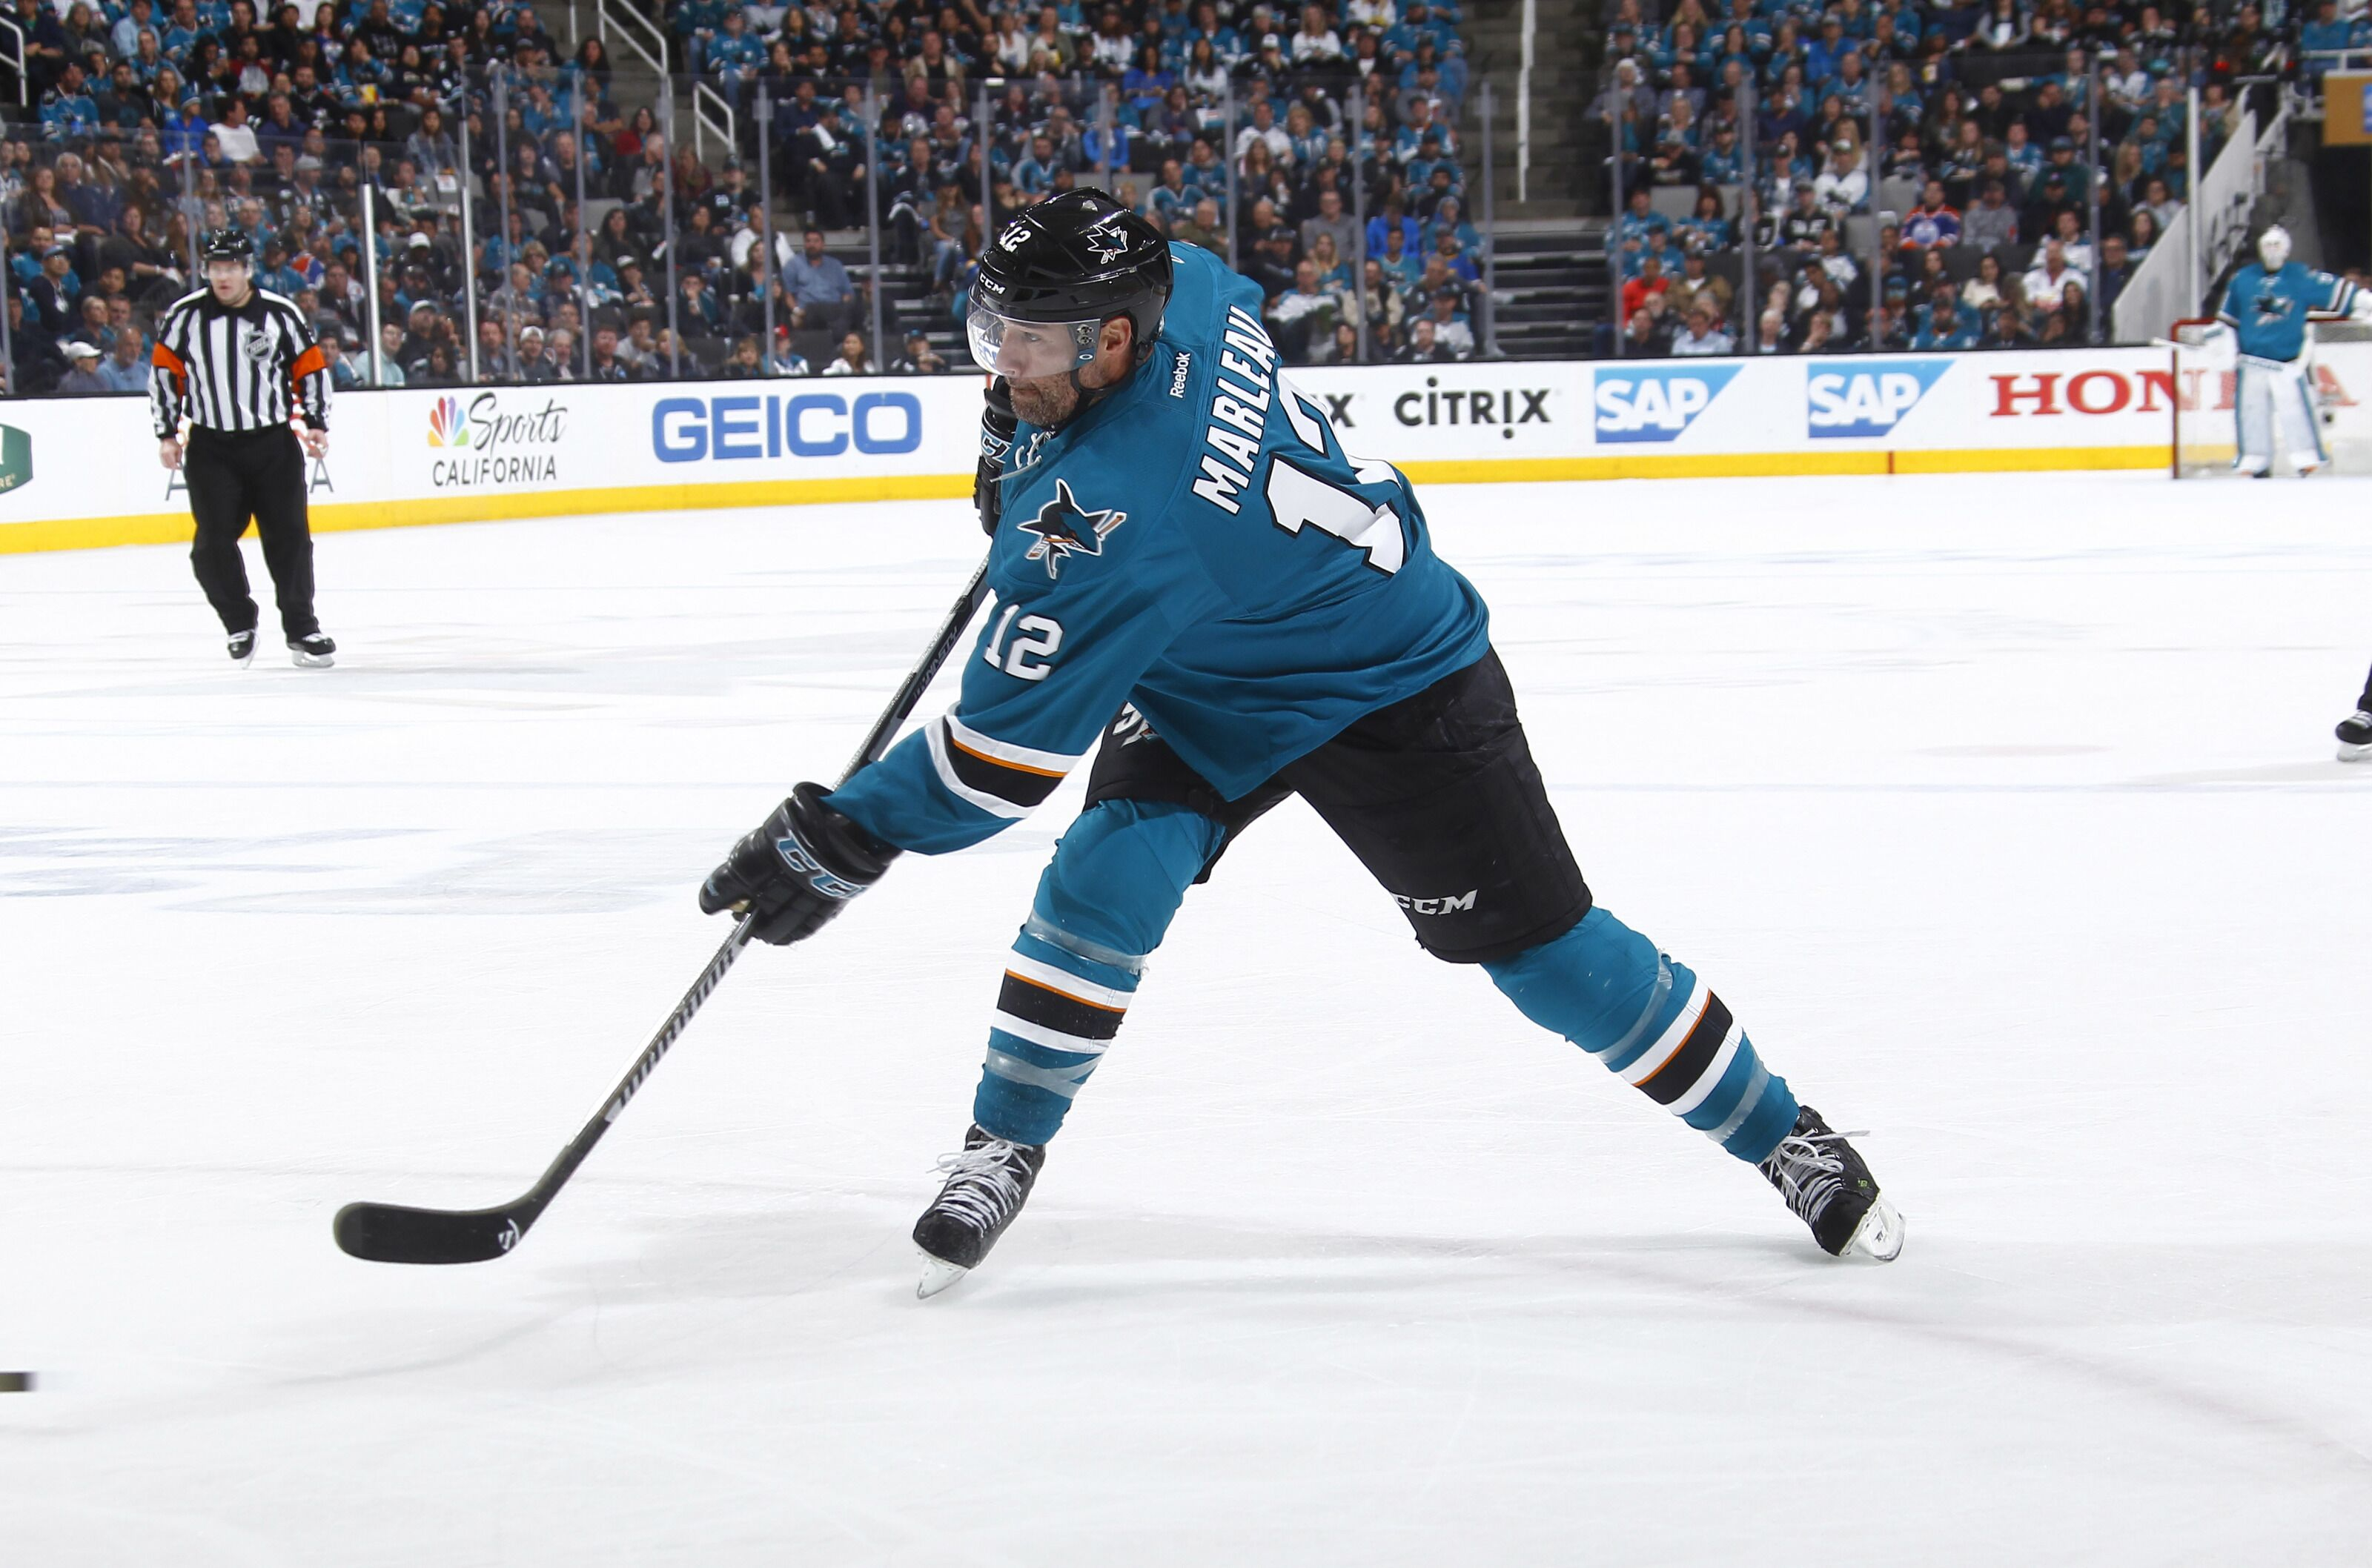 Report: Patrick Marleau Unlikely to Return to the San Jose Sharks